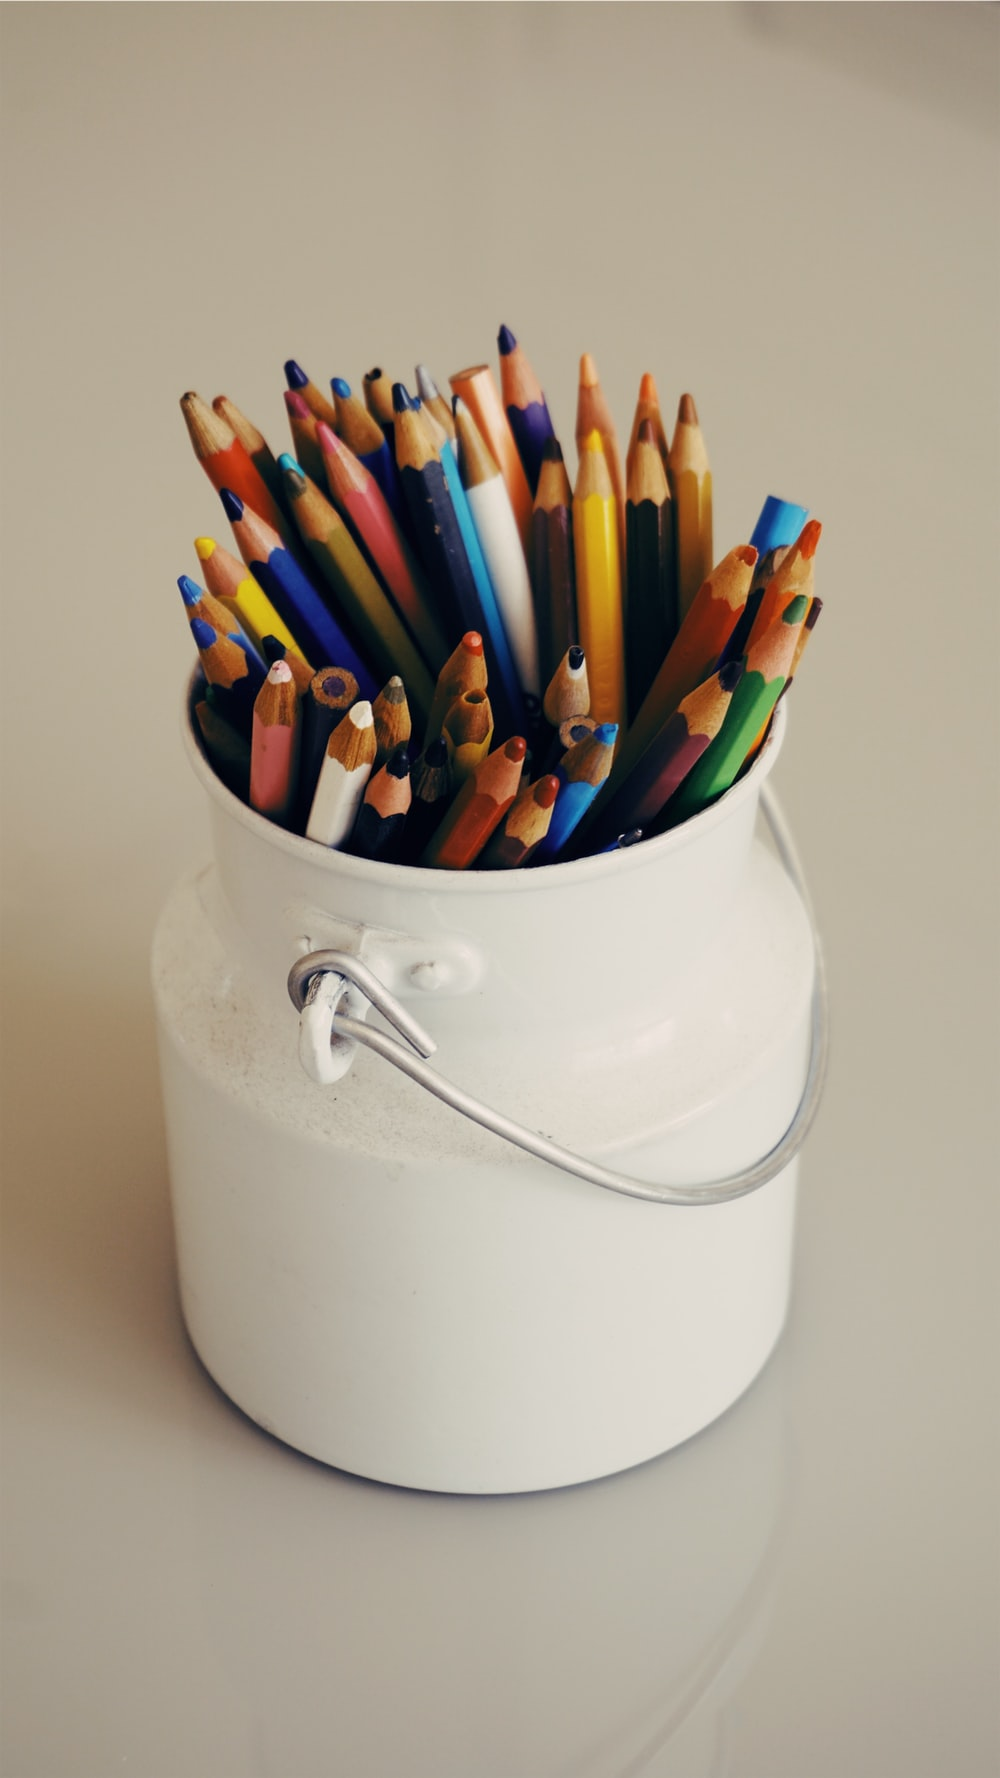 assorted-color coloring pens on white bucket